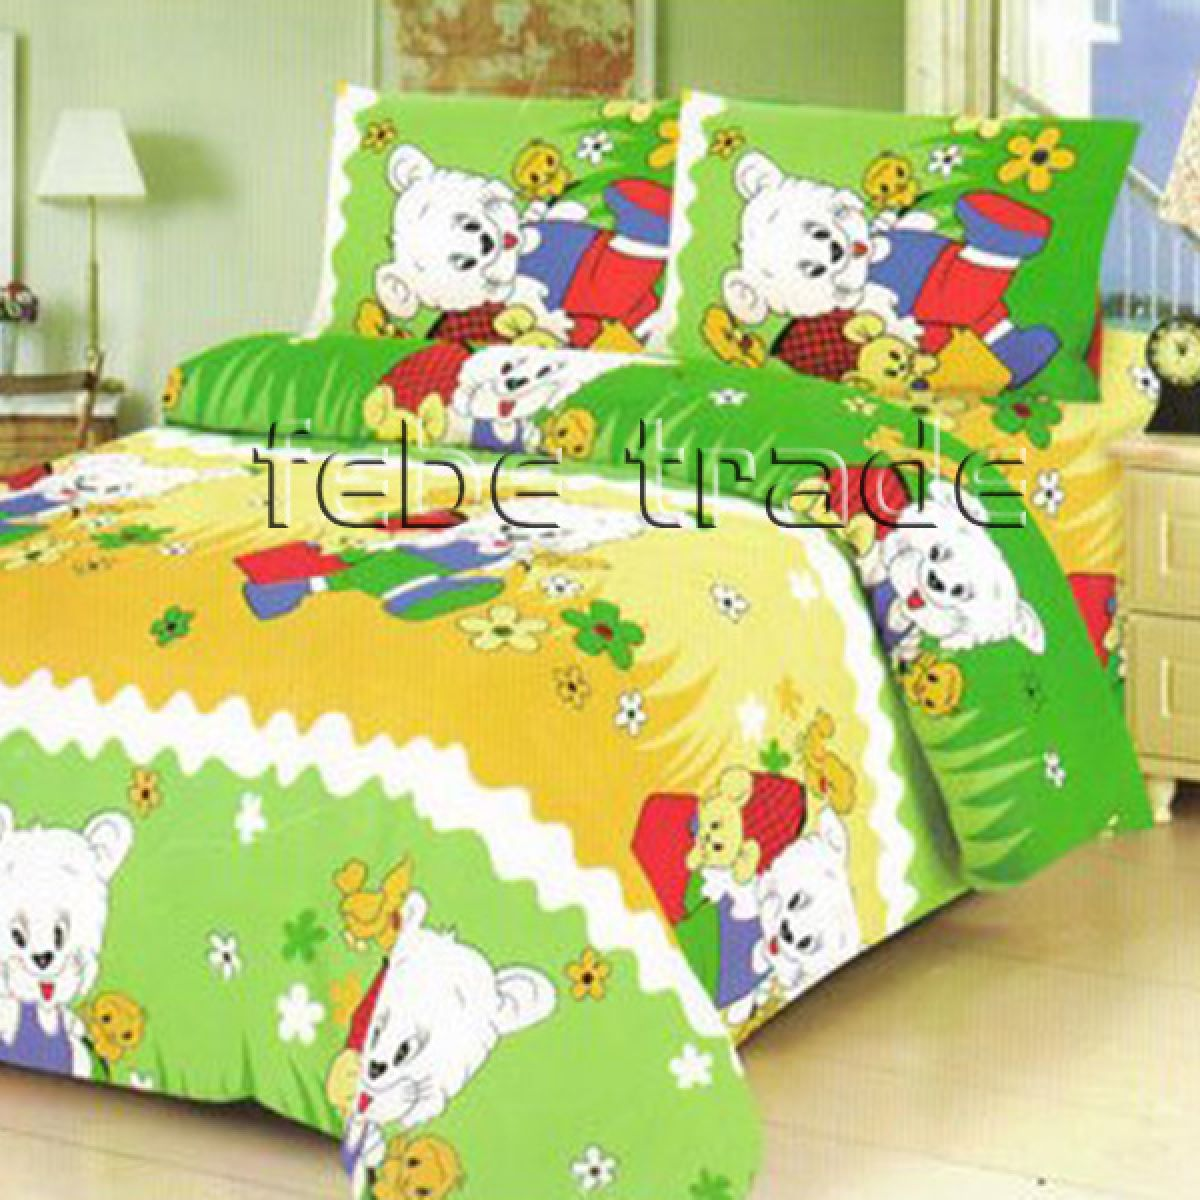 Cheap Beddings - TPR-316 - 160x200 cm - 2 pcs